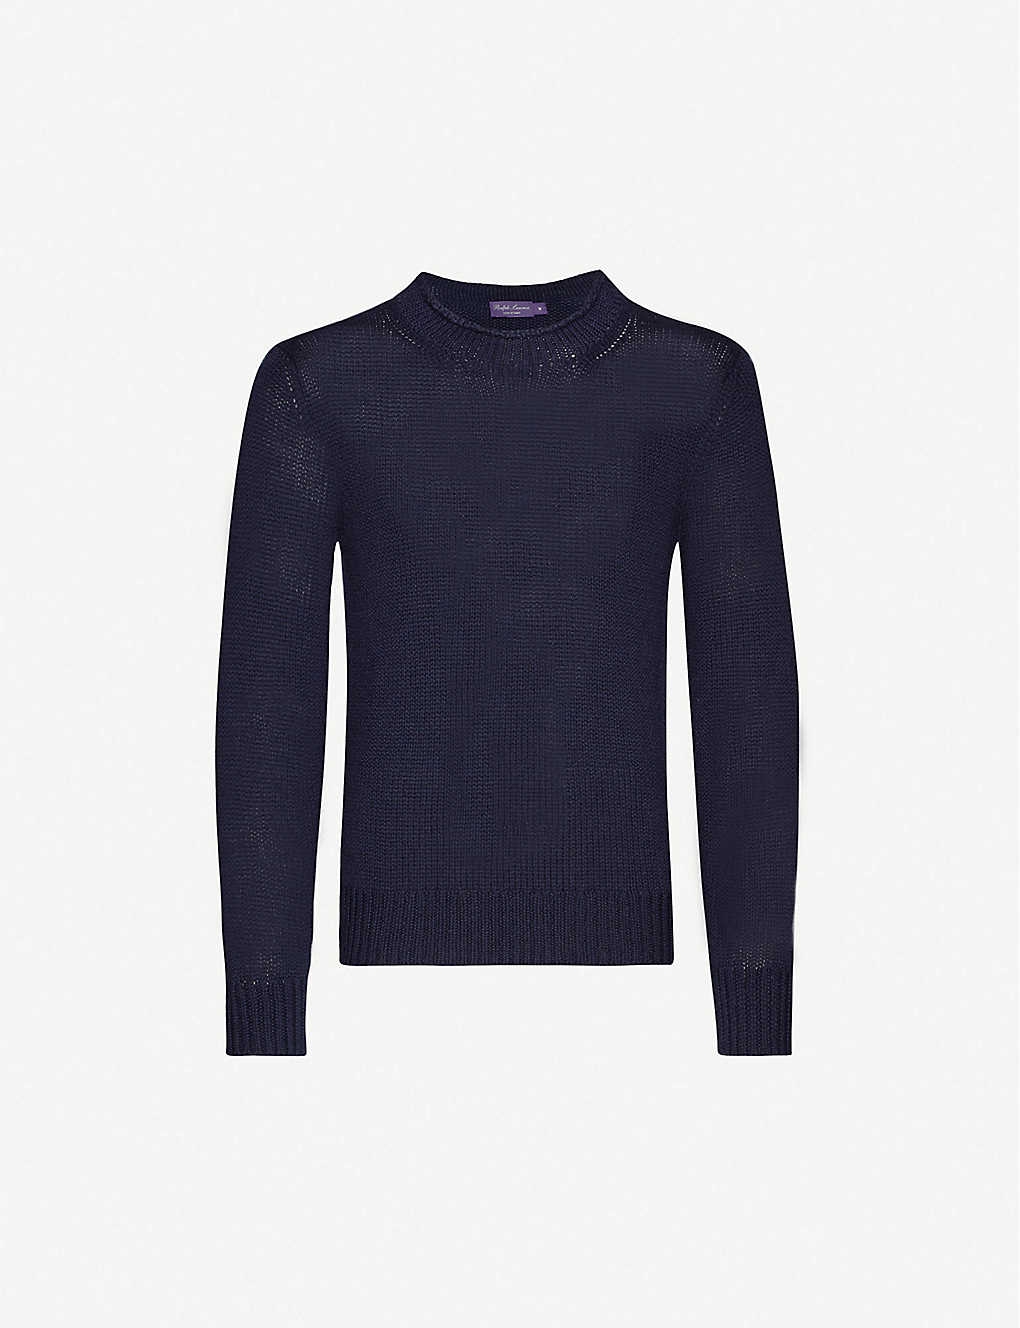 RALPH LAUREN PURPLE LABEL: High-neck slim-fit cashmere jumper